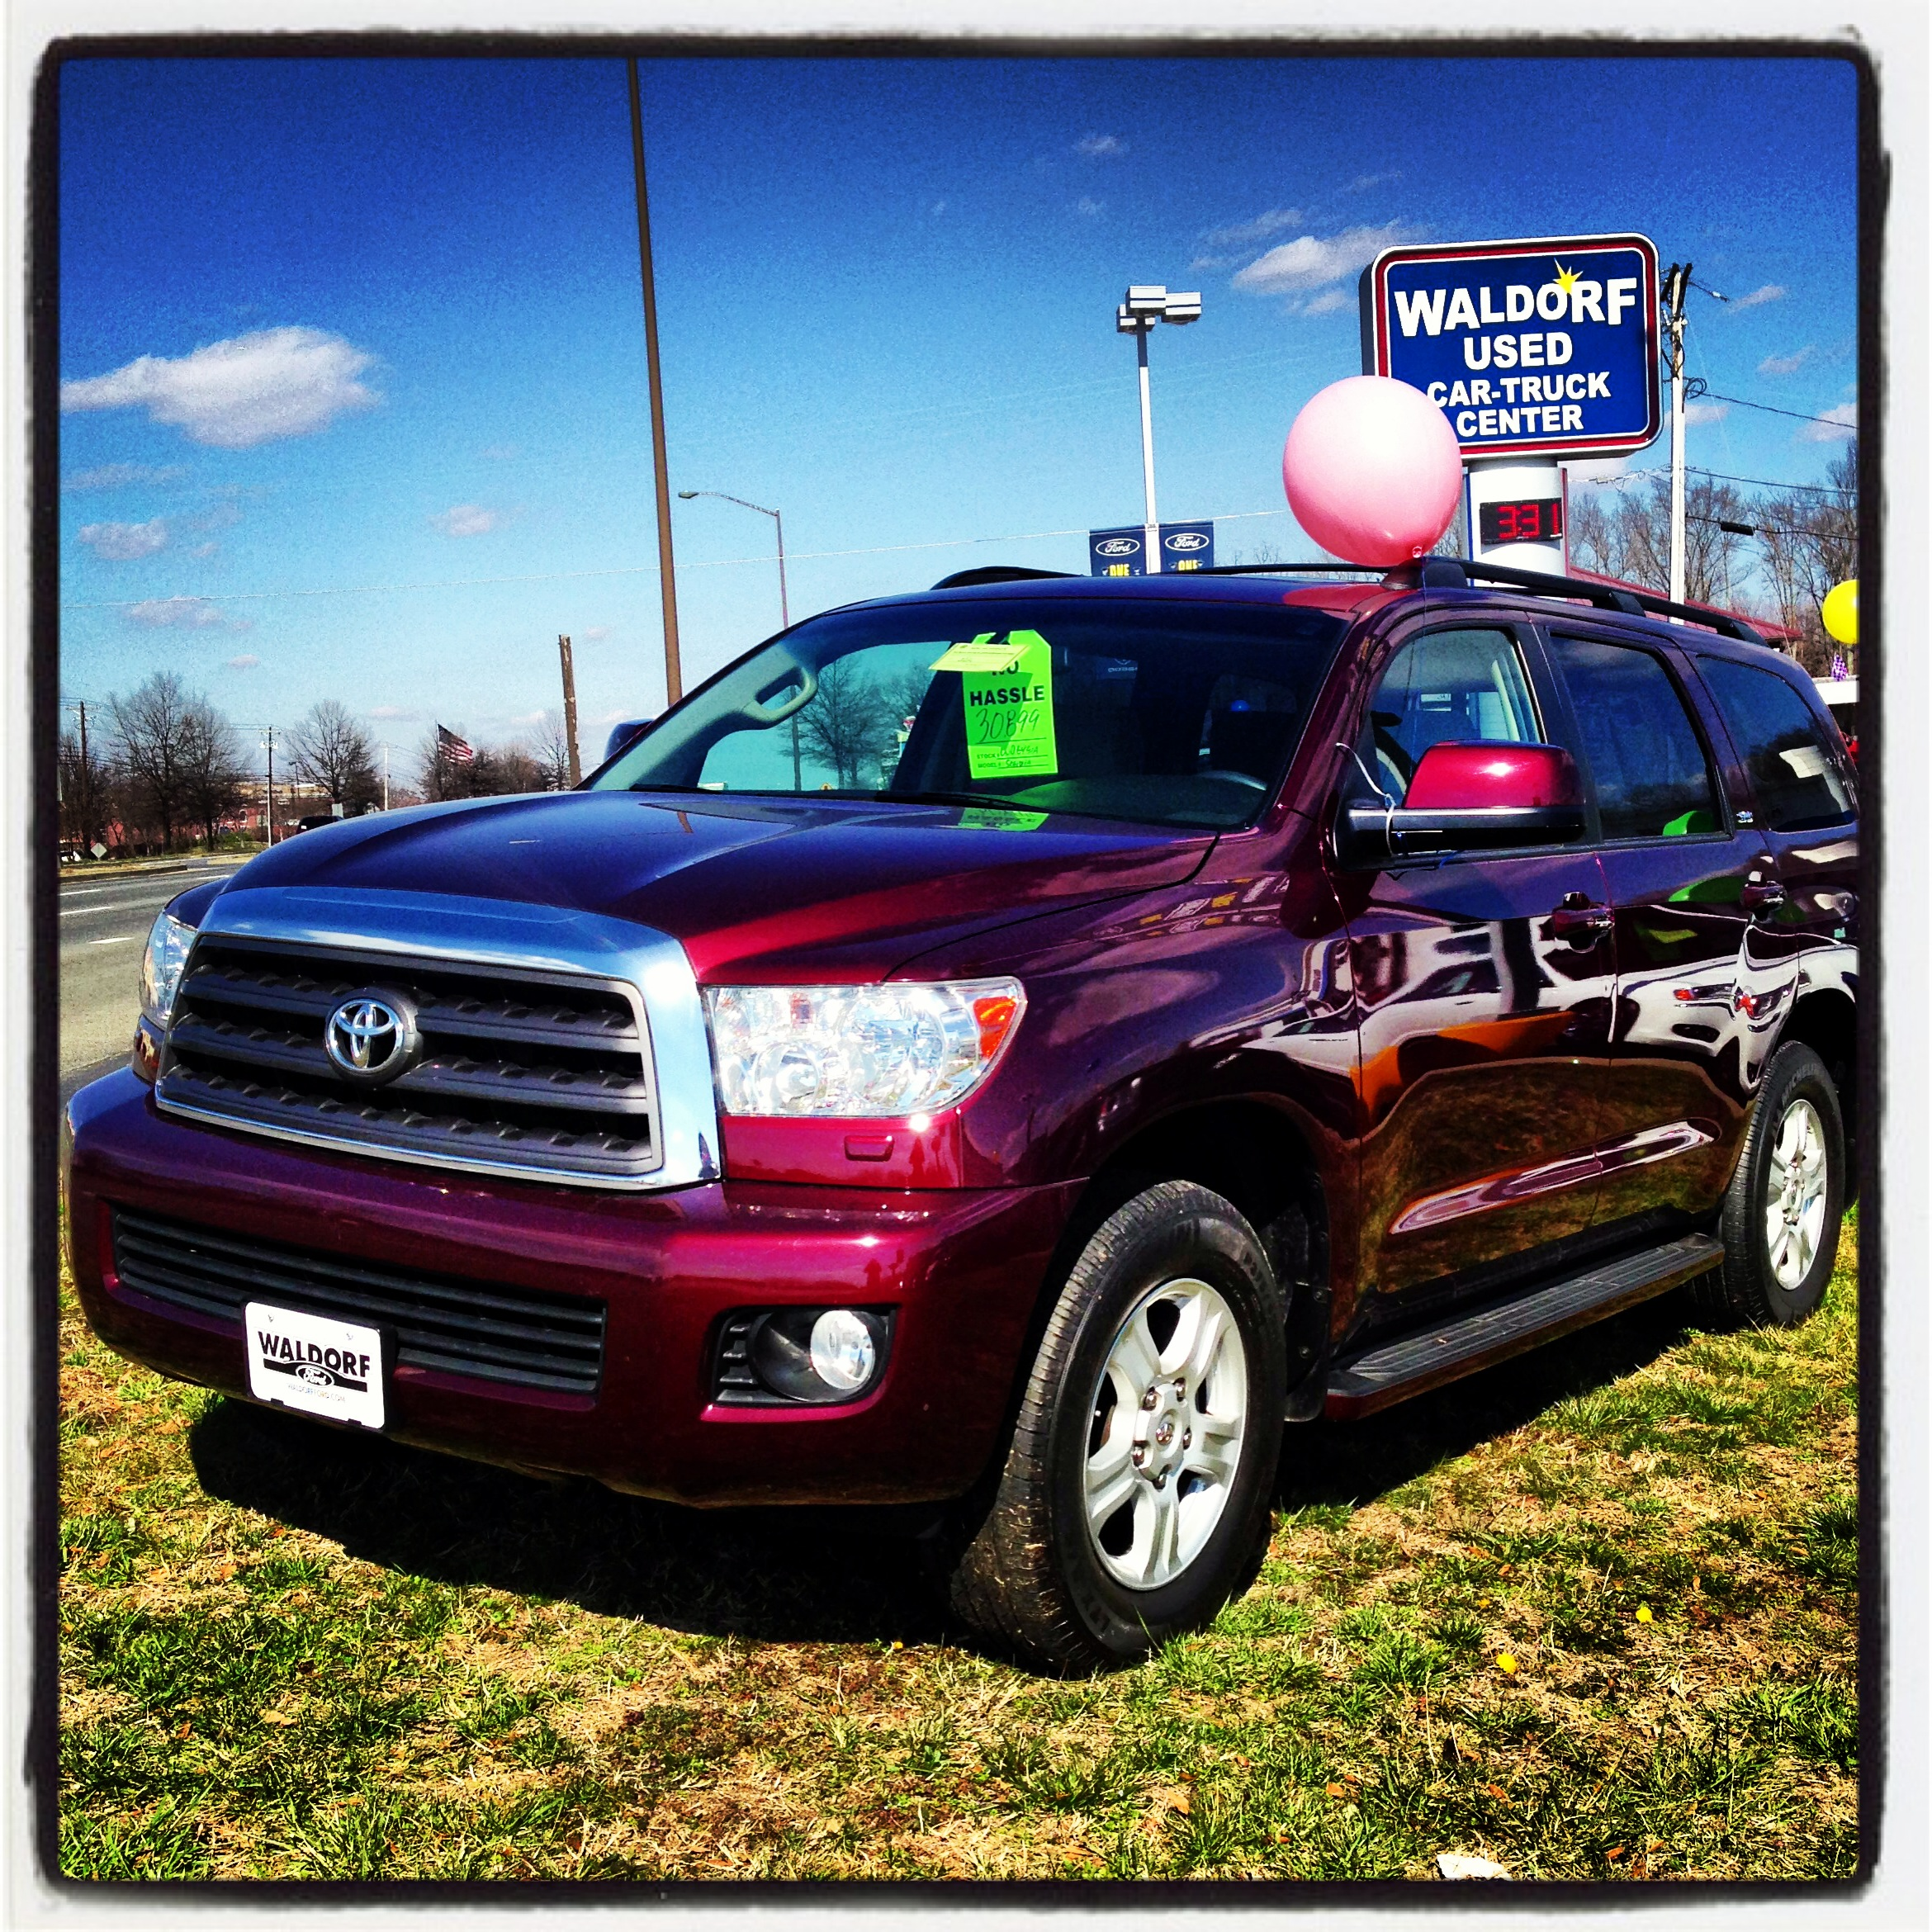 Waldorf Ford & Dodge Pre owned Car Guest Blogger Windell Rogers